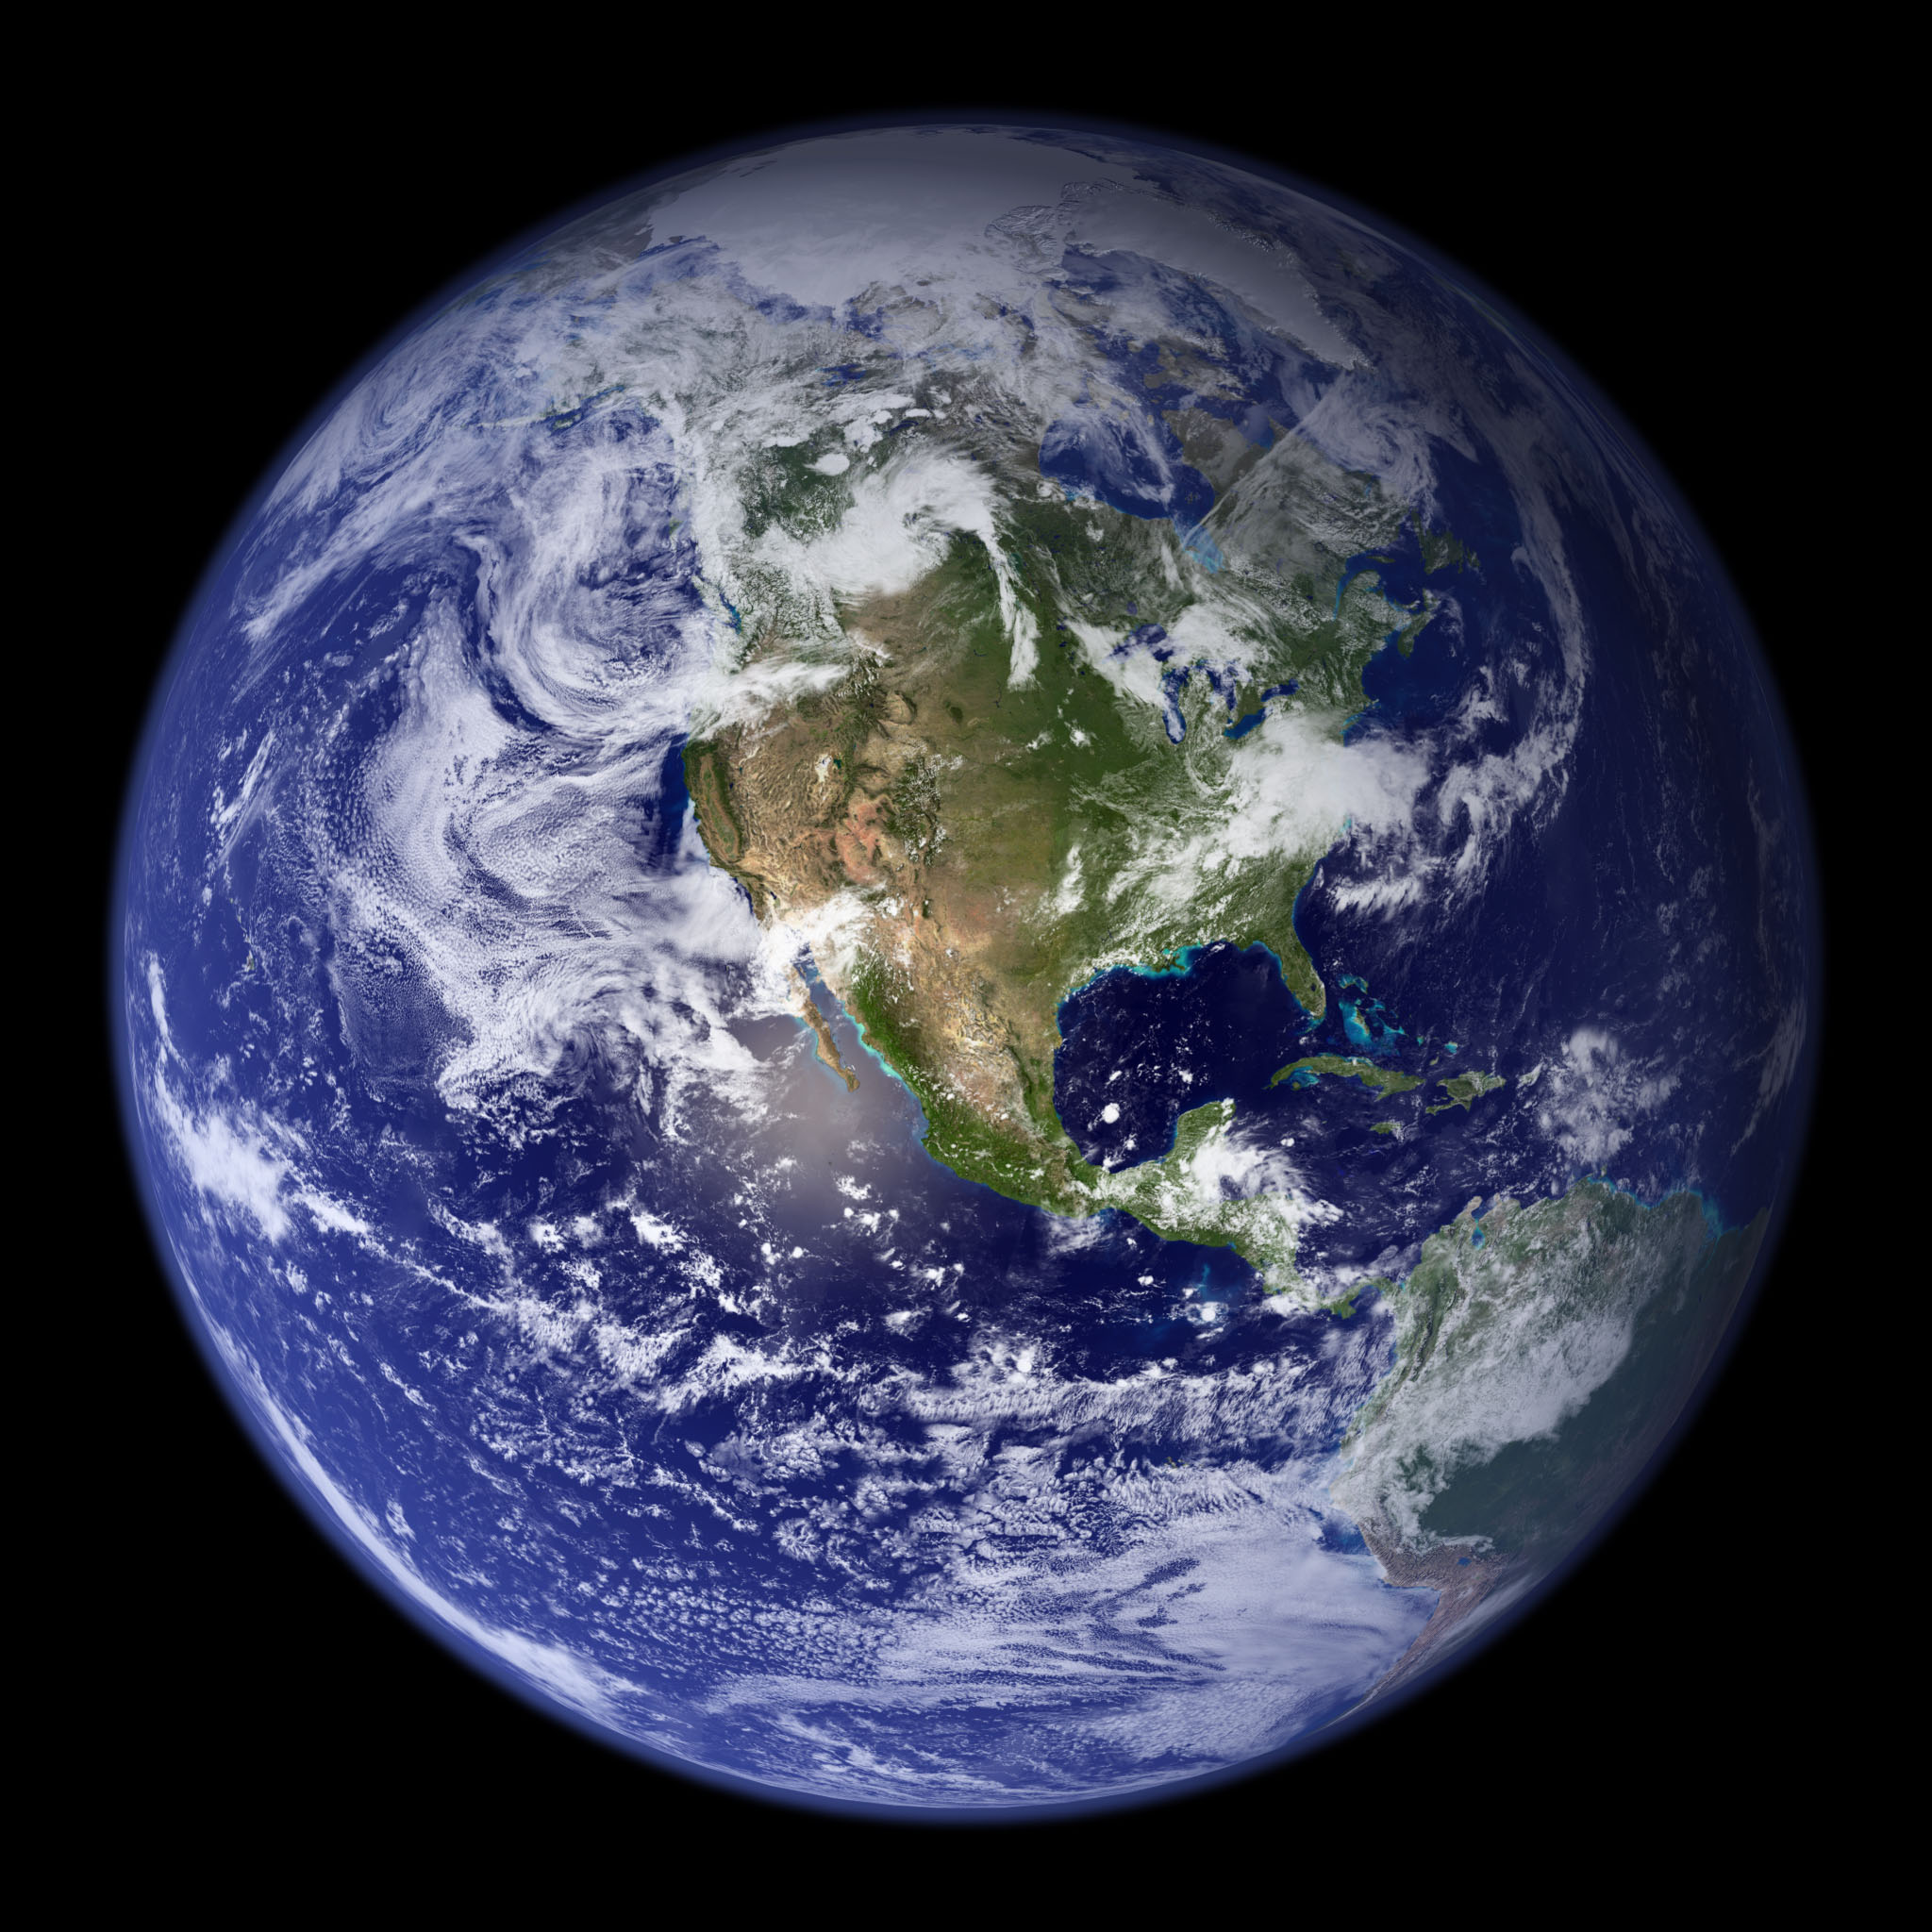 Dayside of Earth, including North America.